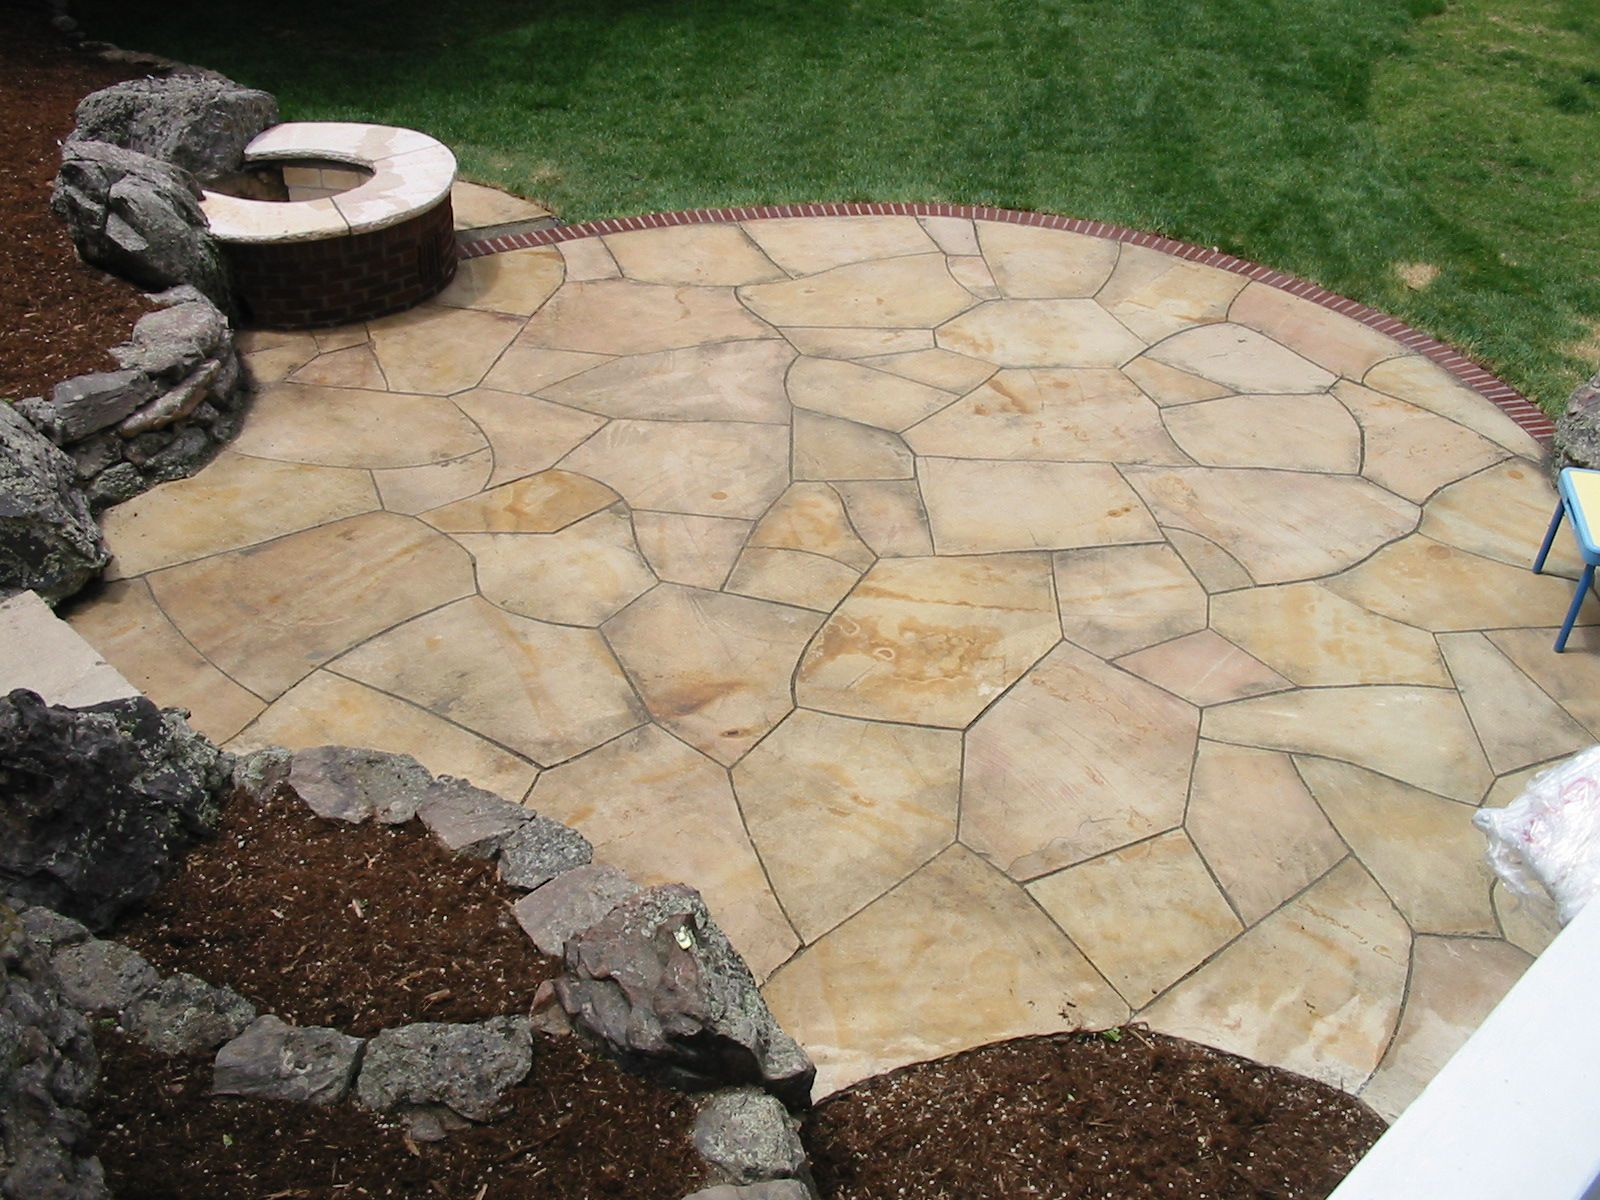 Merveilleux Random Cut Buff Flagstone Patio With Brick Edge And Natural Boulder Edgers.  By Native